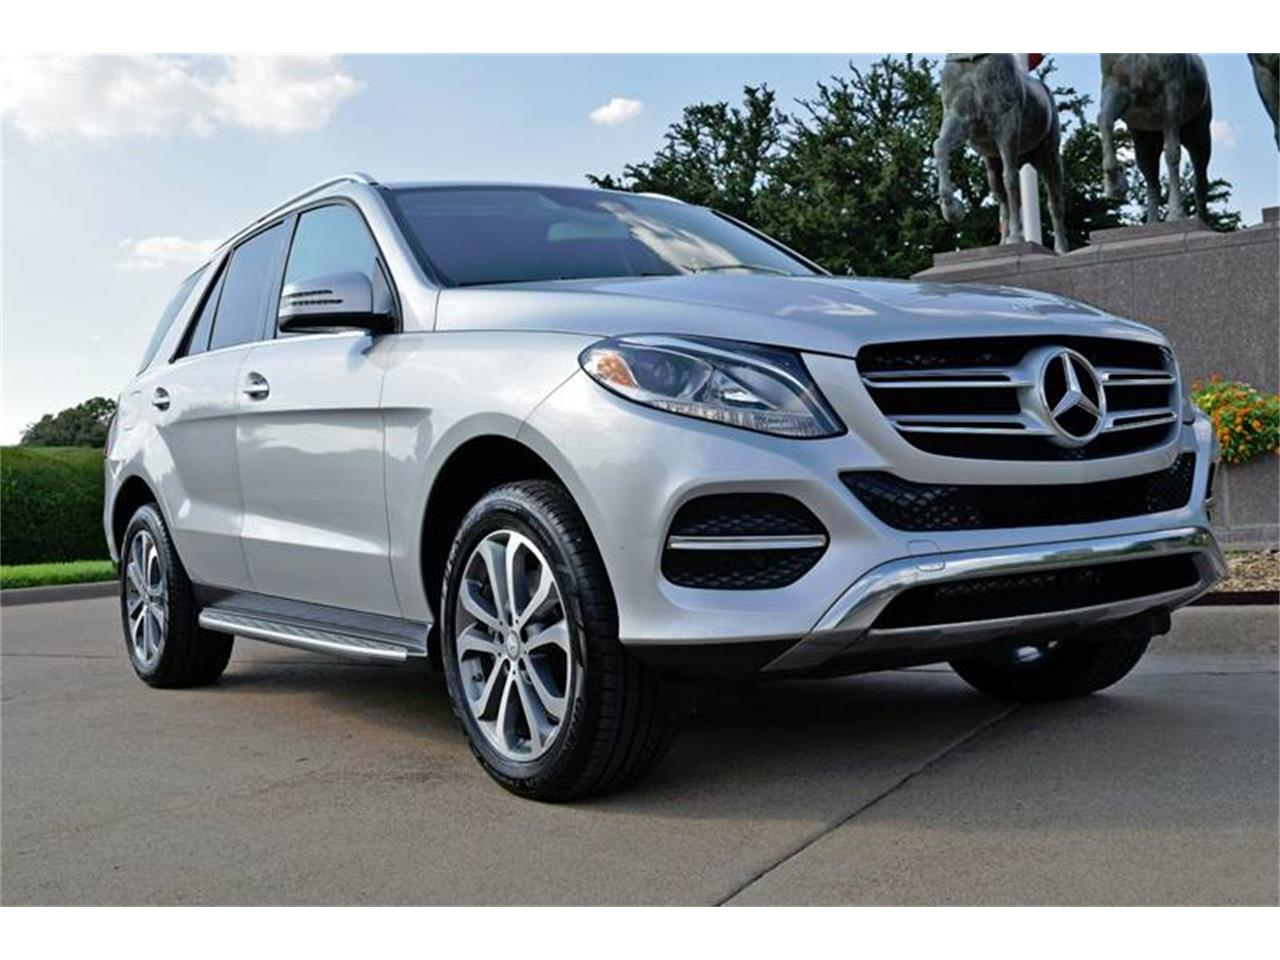 for sale 2016 mercedes-benz gl-class in fort worth, texas cars - fort worth, tx at geebo